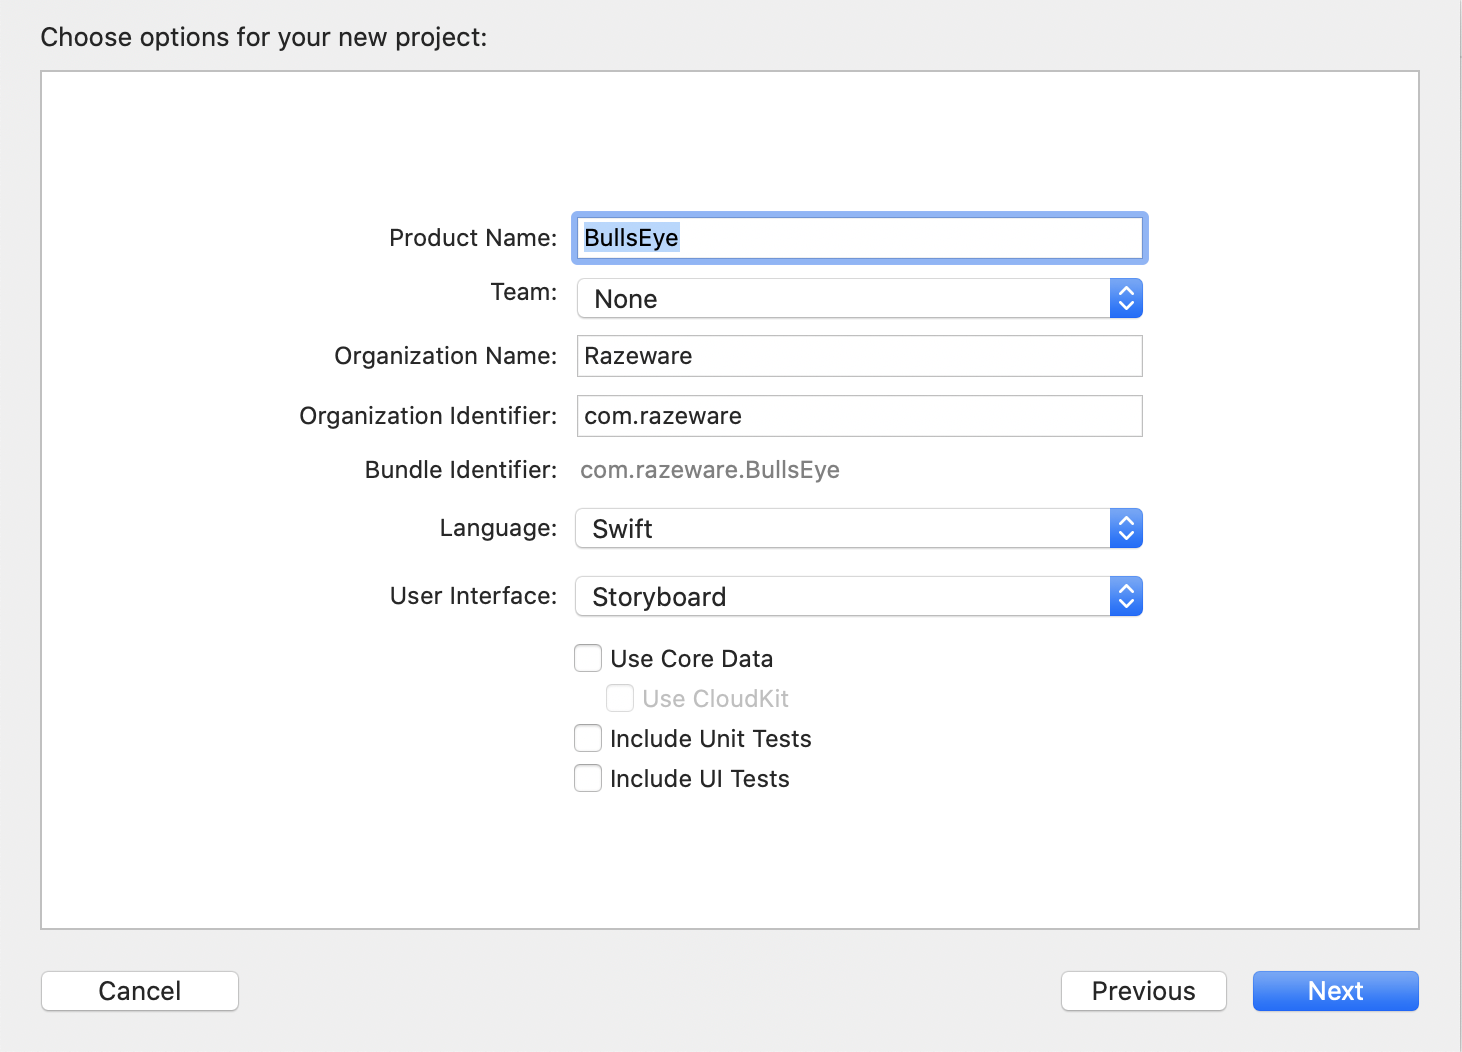 Configuring the new project